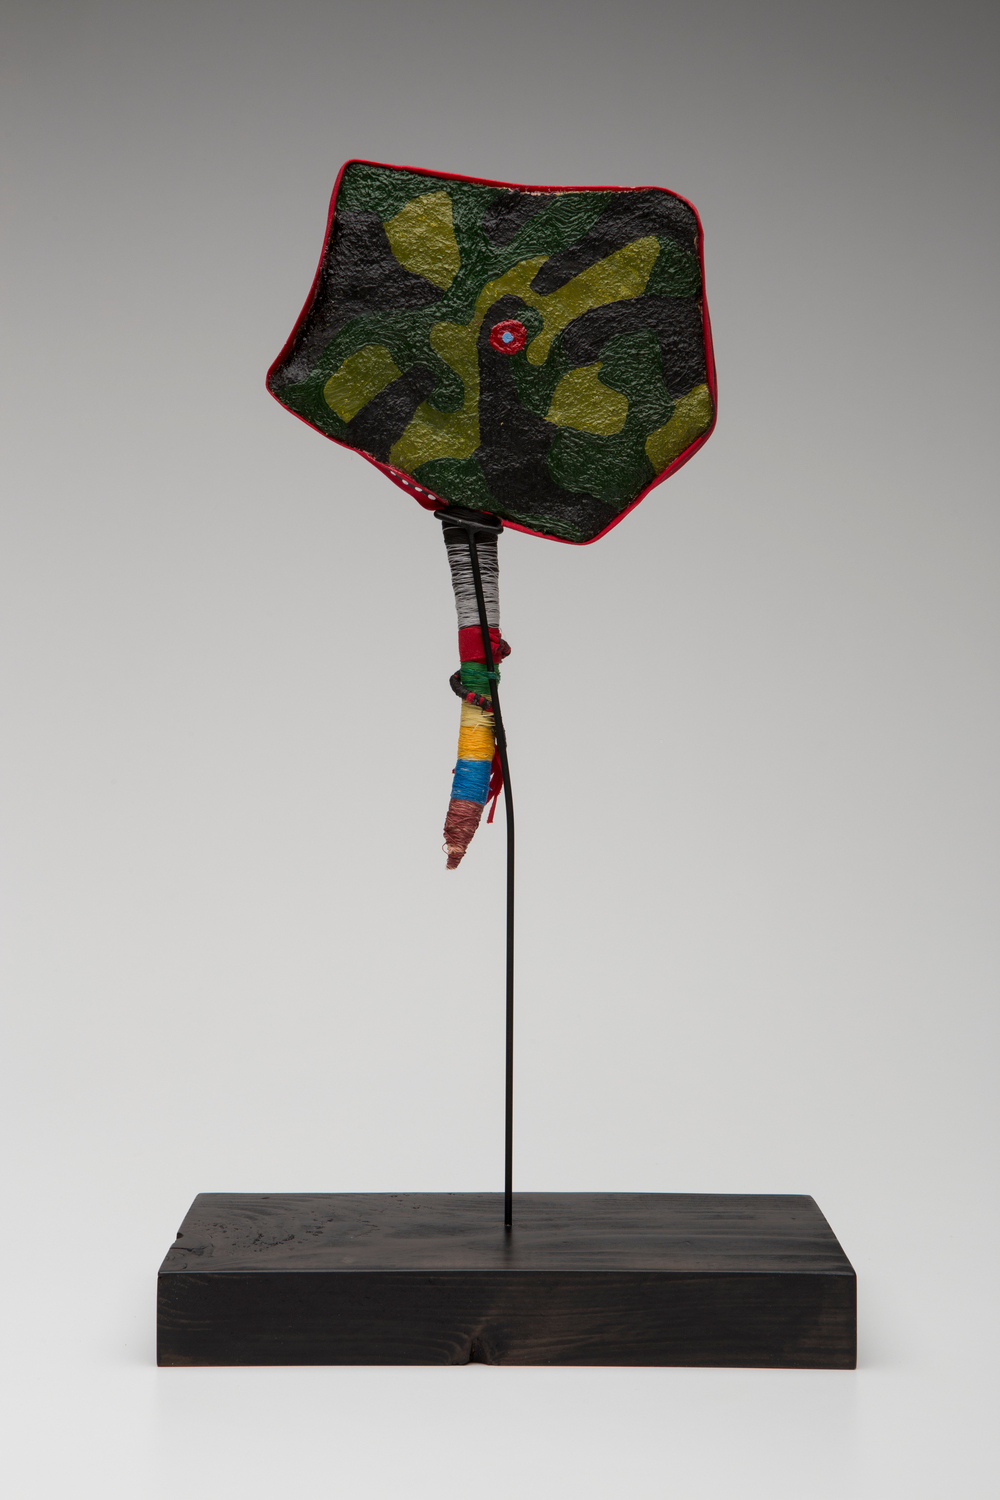 Prayer Paddle: For Loneliness (back view) , mixed media, 11 by 7 inches, 2007-2014.